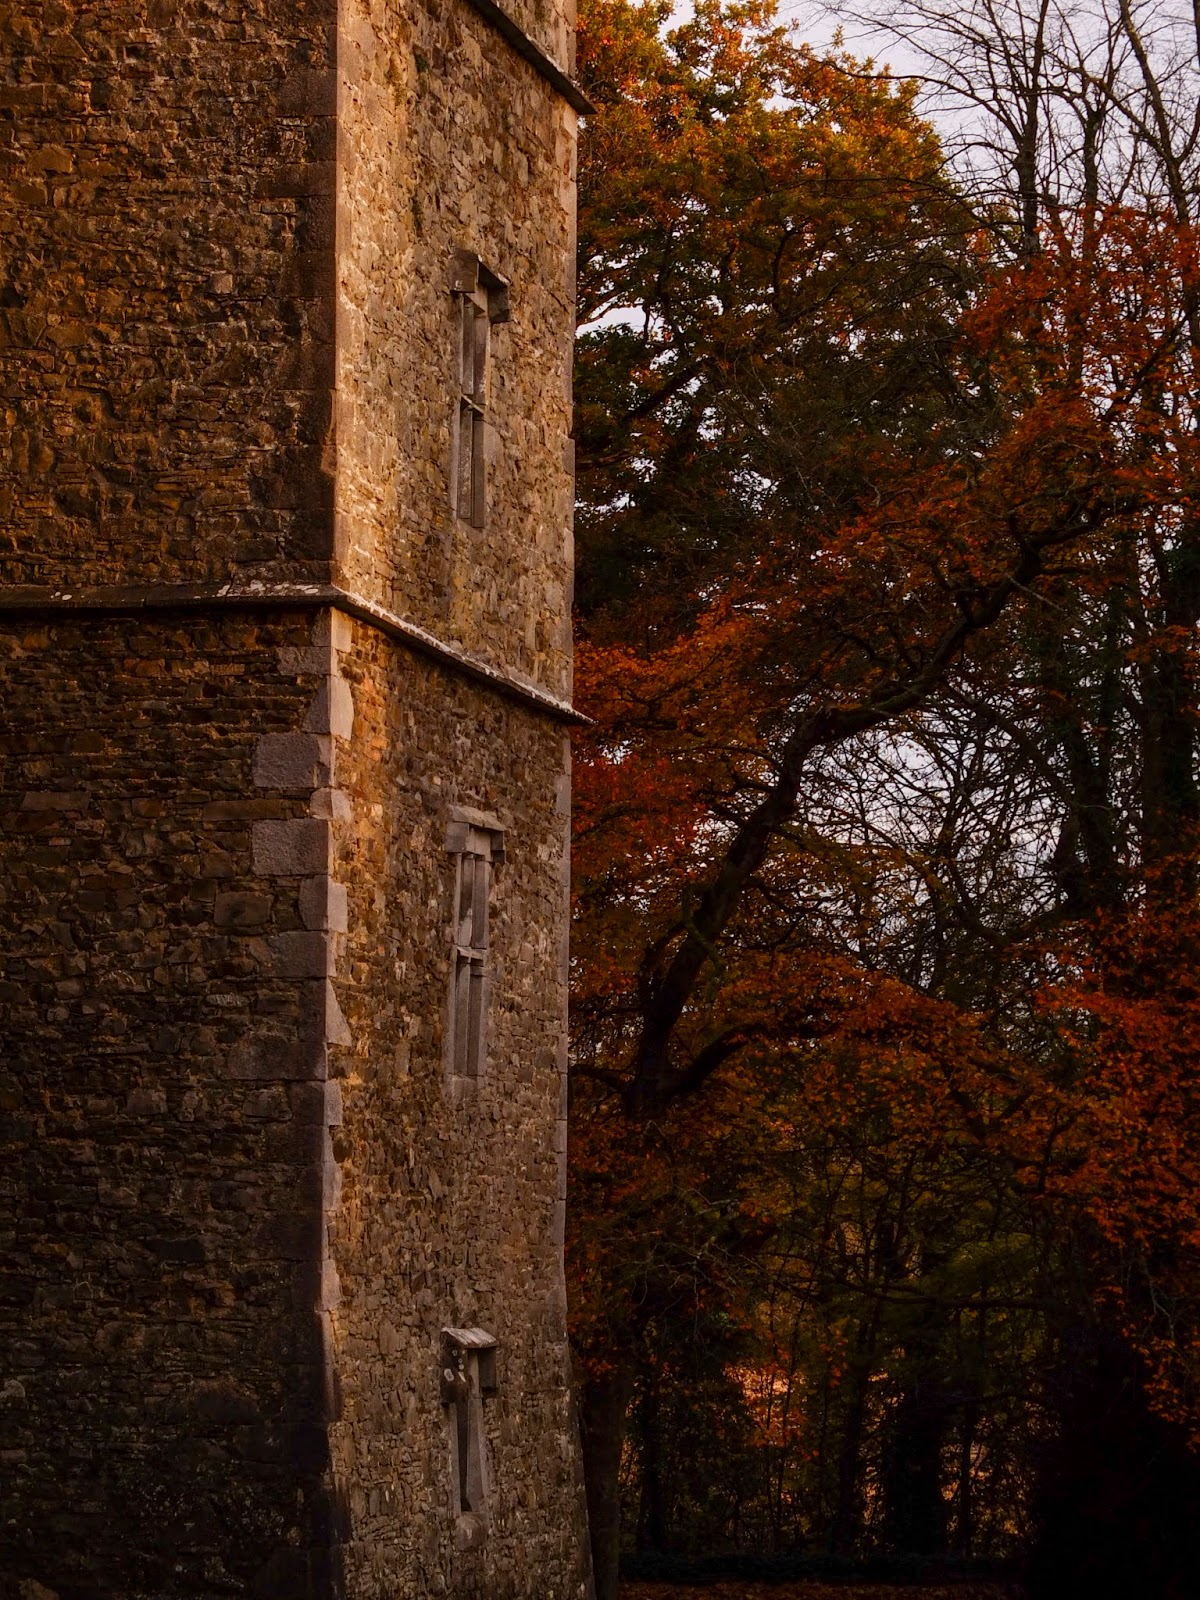 Kanturk Castle and brown autumn trees during a sunset in North Cork.